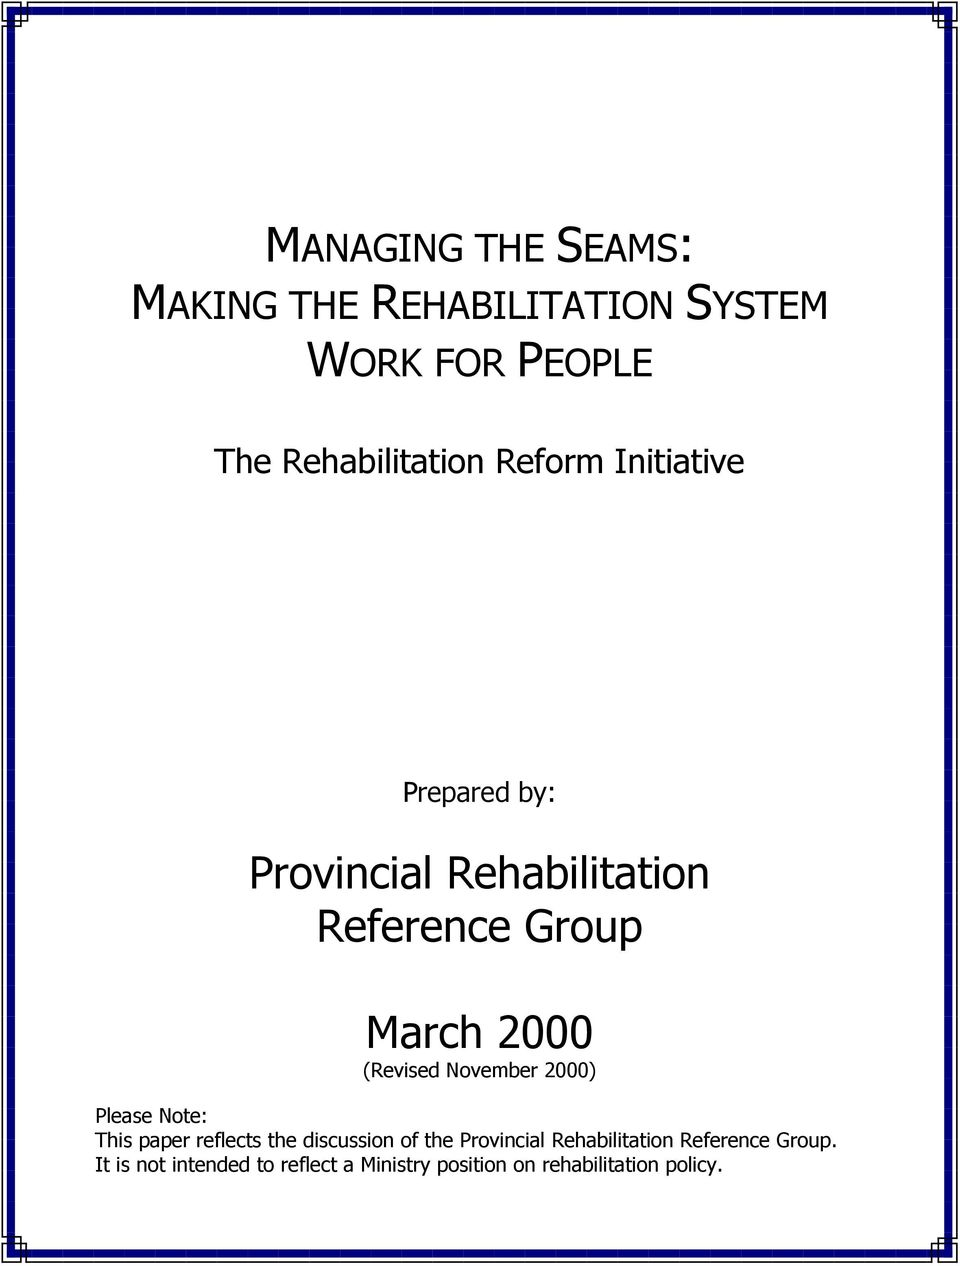 November 2000) Please Note: This paper reflects the discussion of the Provincial